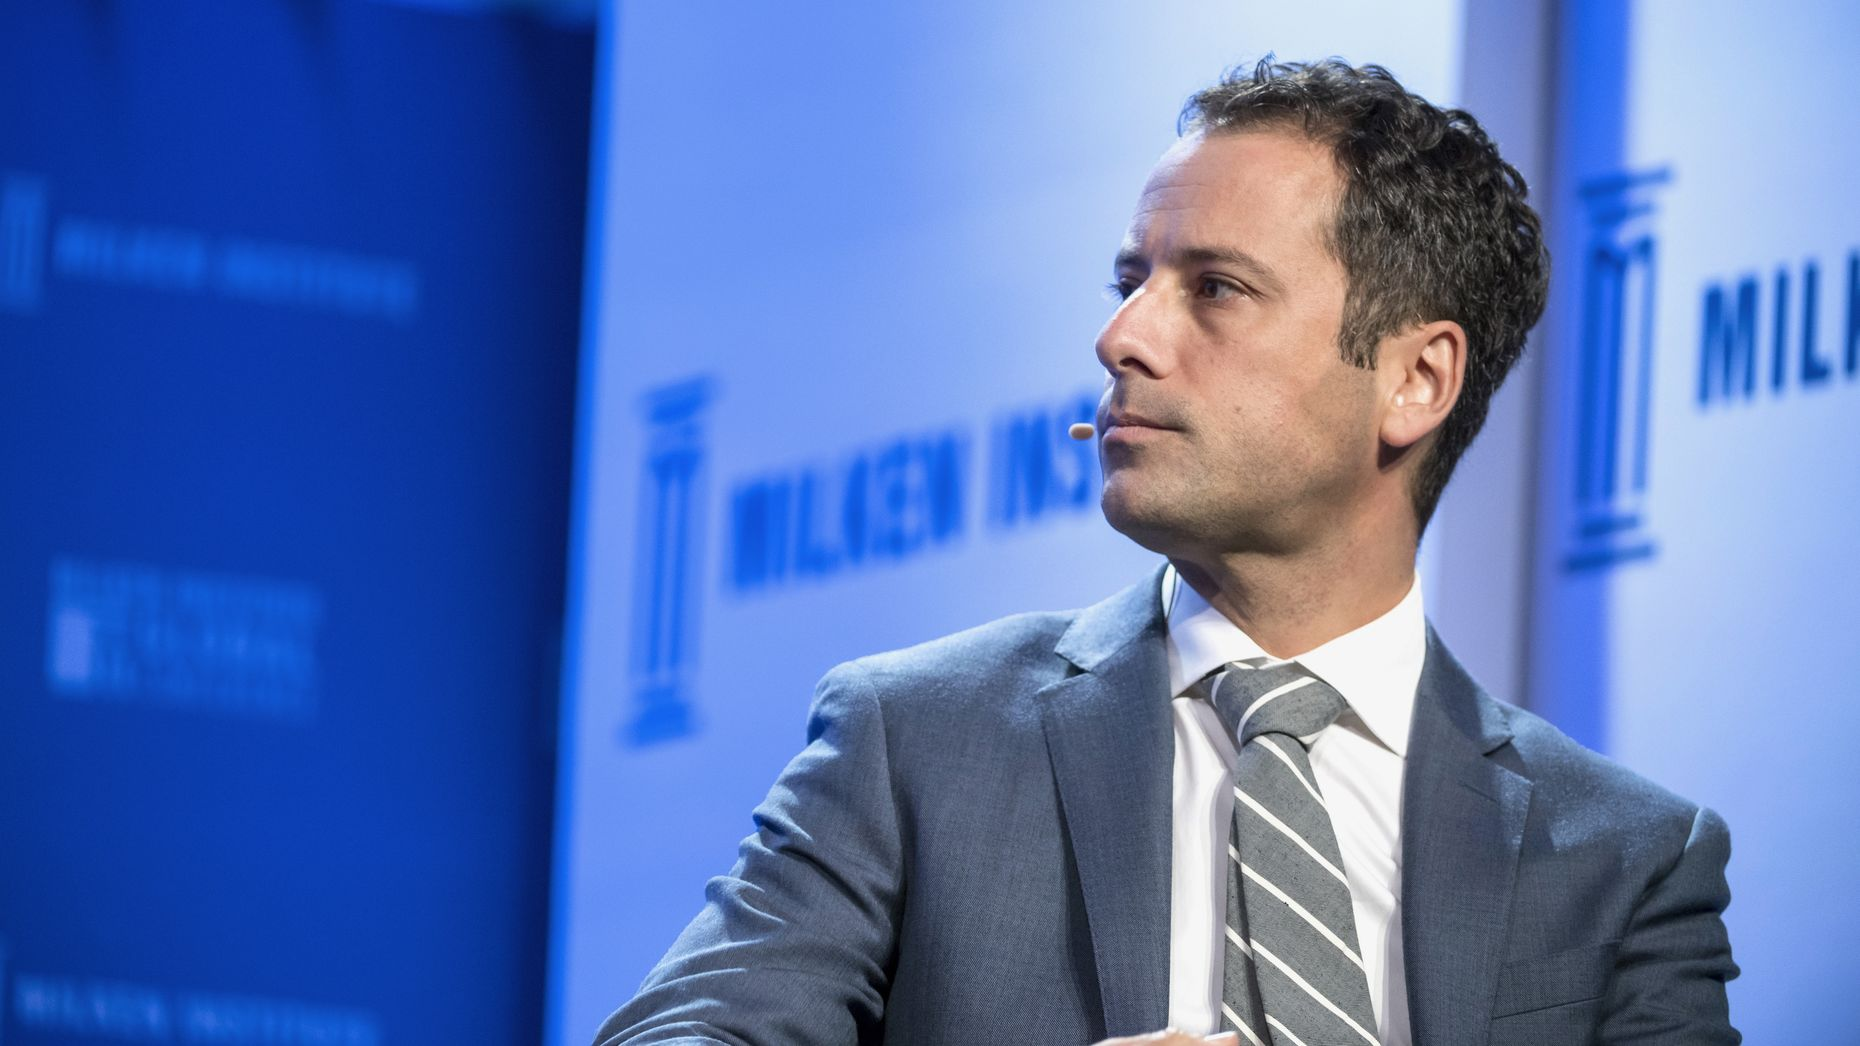 Cheddar CEO Jon Steinberg. Photo by Bloomberg.